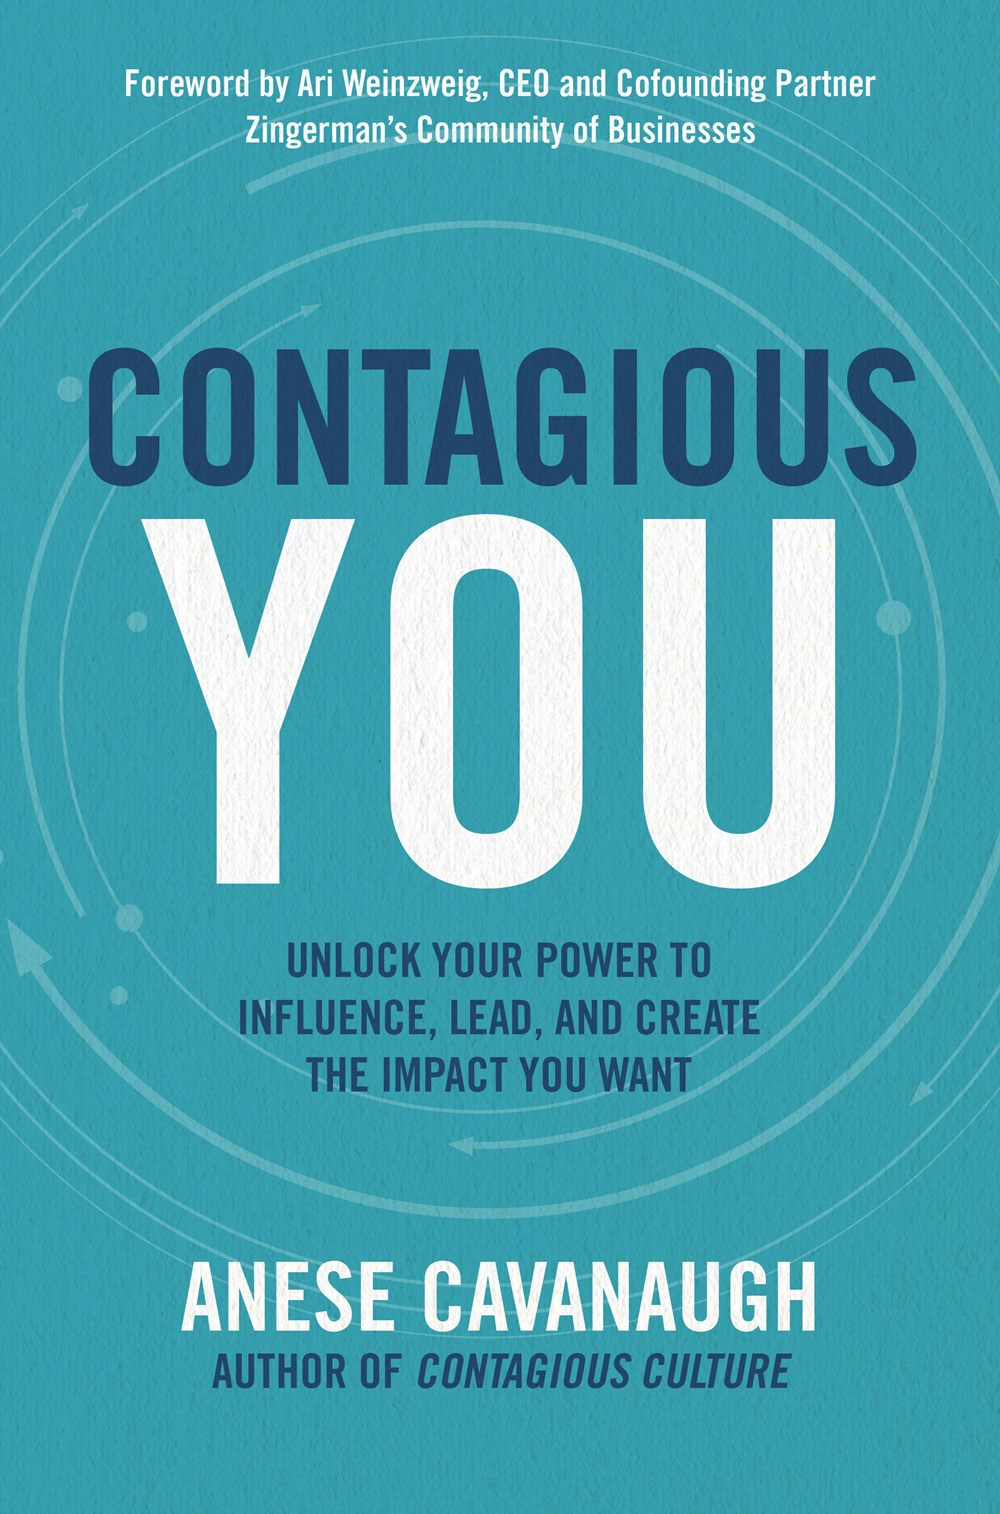 Contagious You Unlock Your Power to Influence, Lead, and Creat the Impact You Want